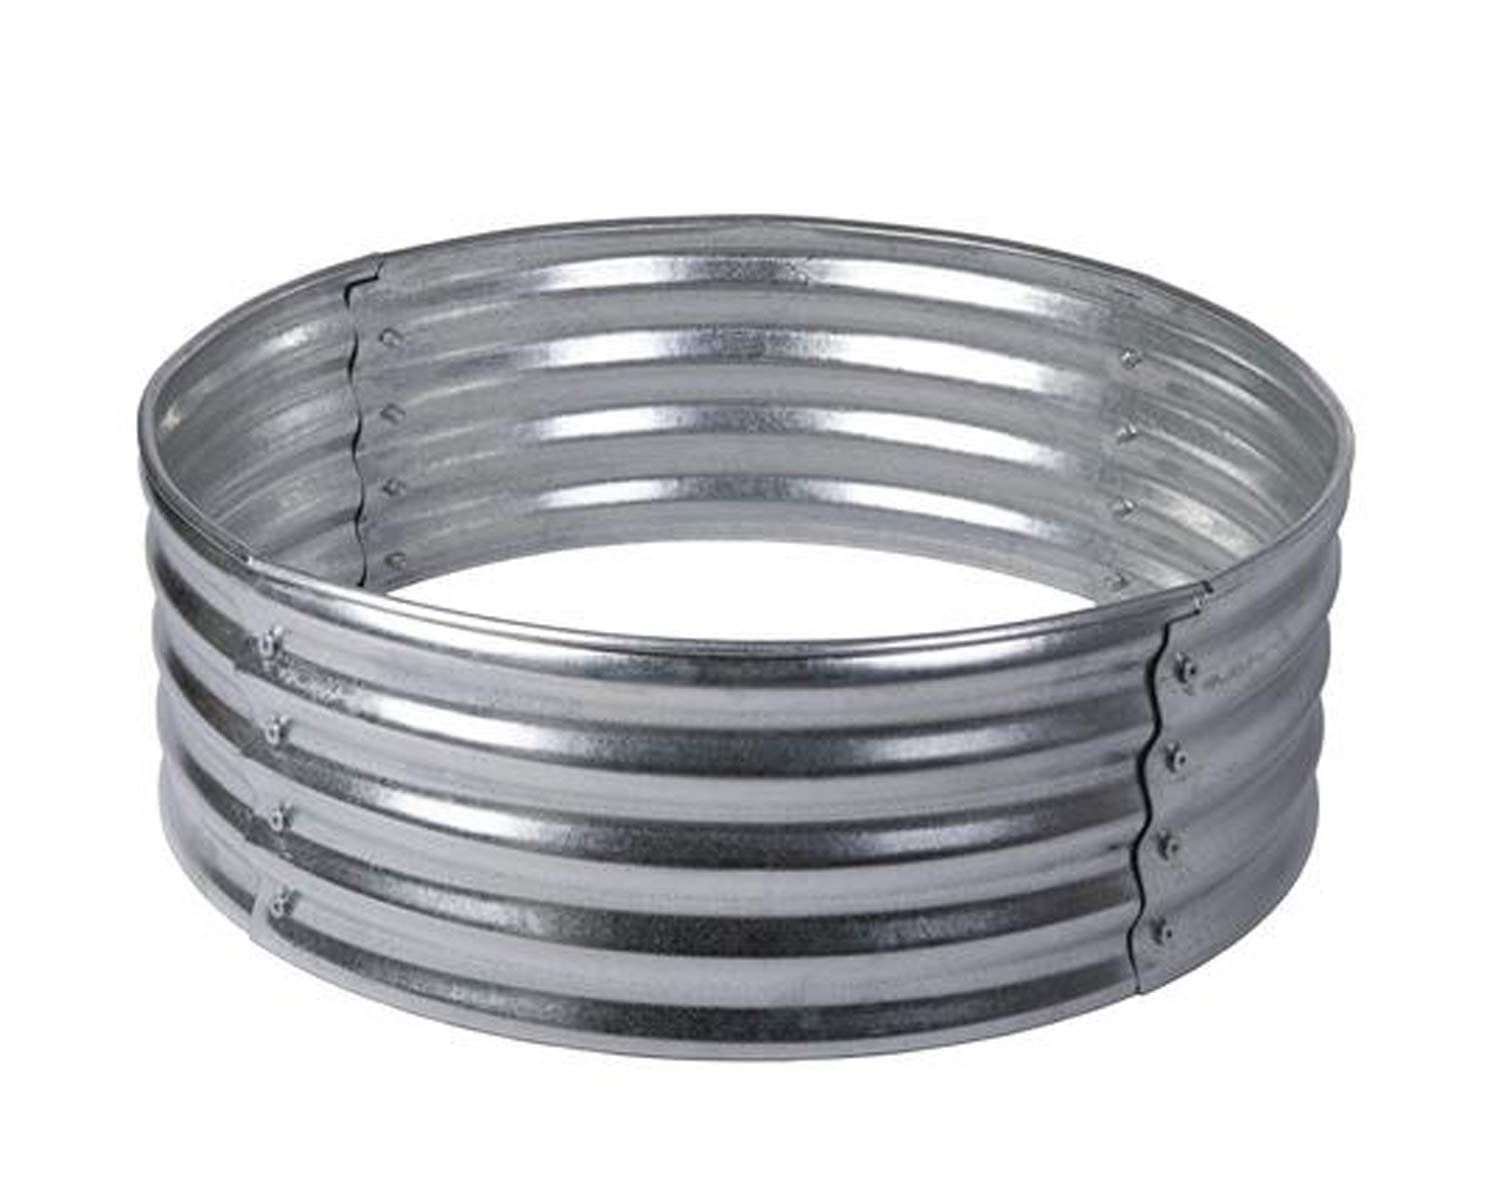 Galvanized Infinity Fire Ring Silver 36